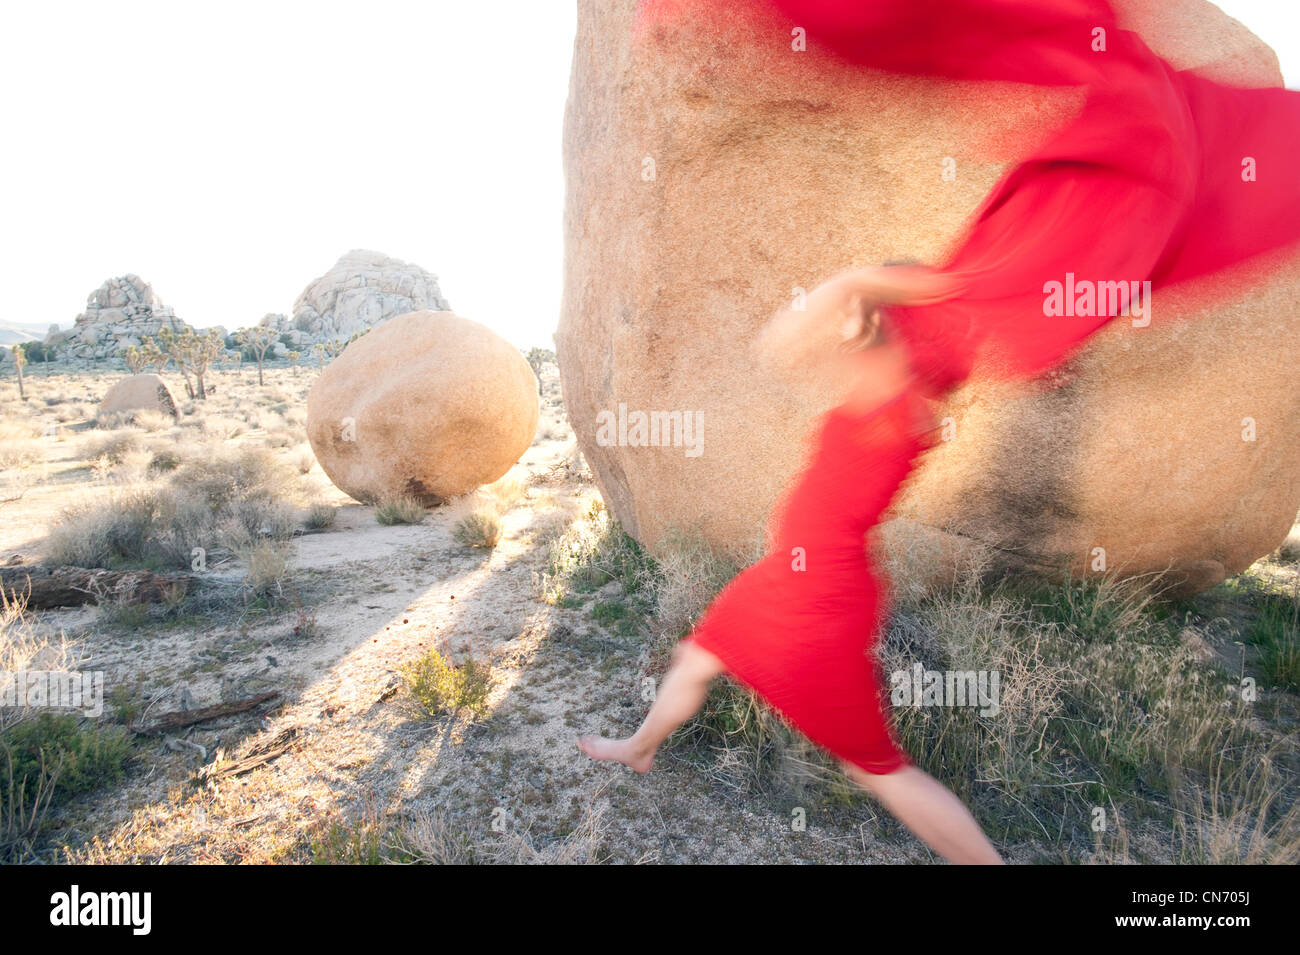 Blurred red woman throwing her red scarf into a stone landscape. - Stock Image